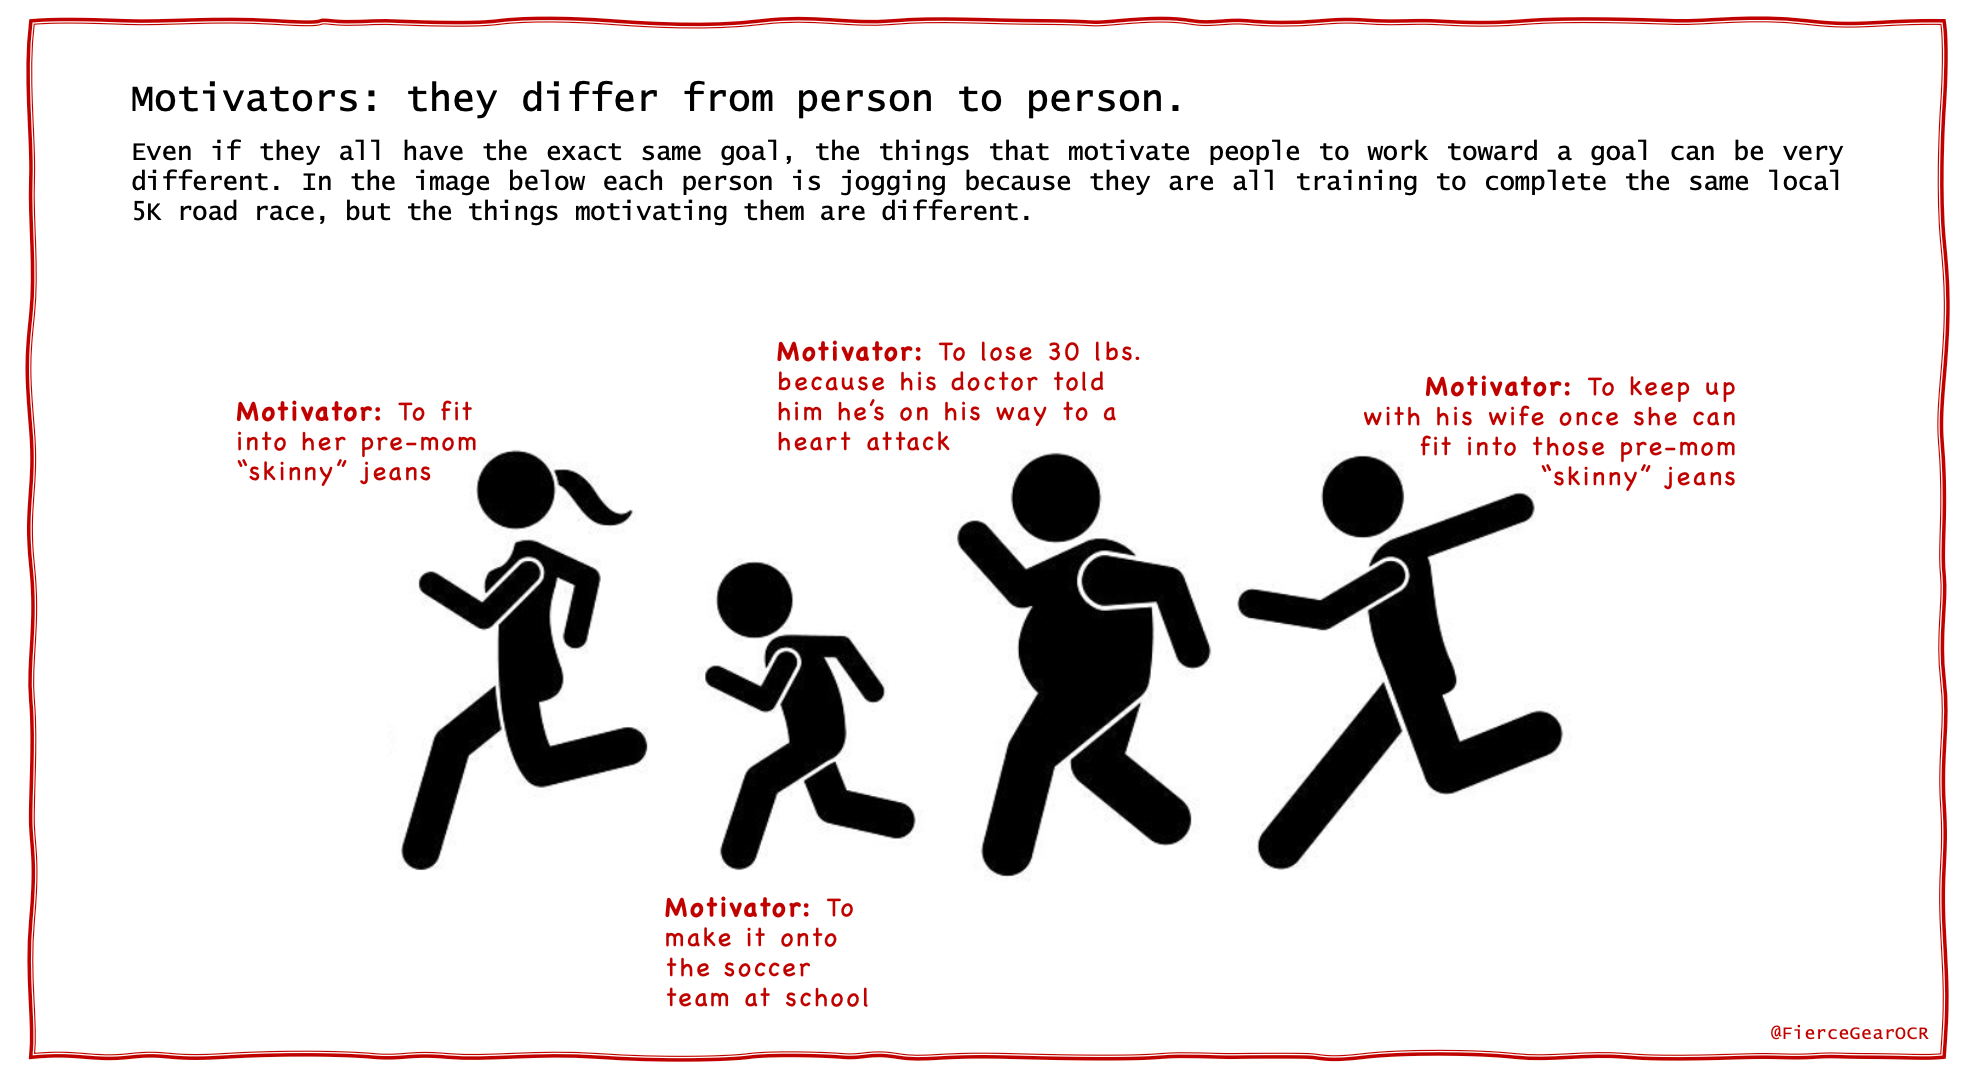 Graphic Illustrating How Motivators Differ By Individual by Katie Purcell for Fierce Gear OCR